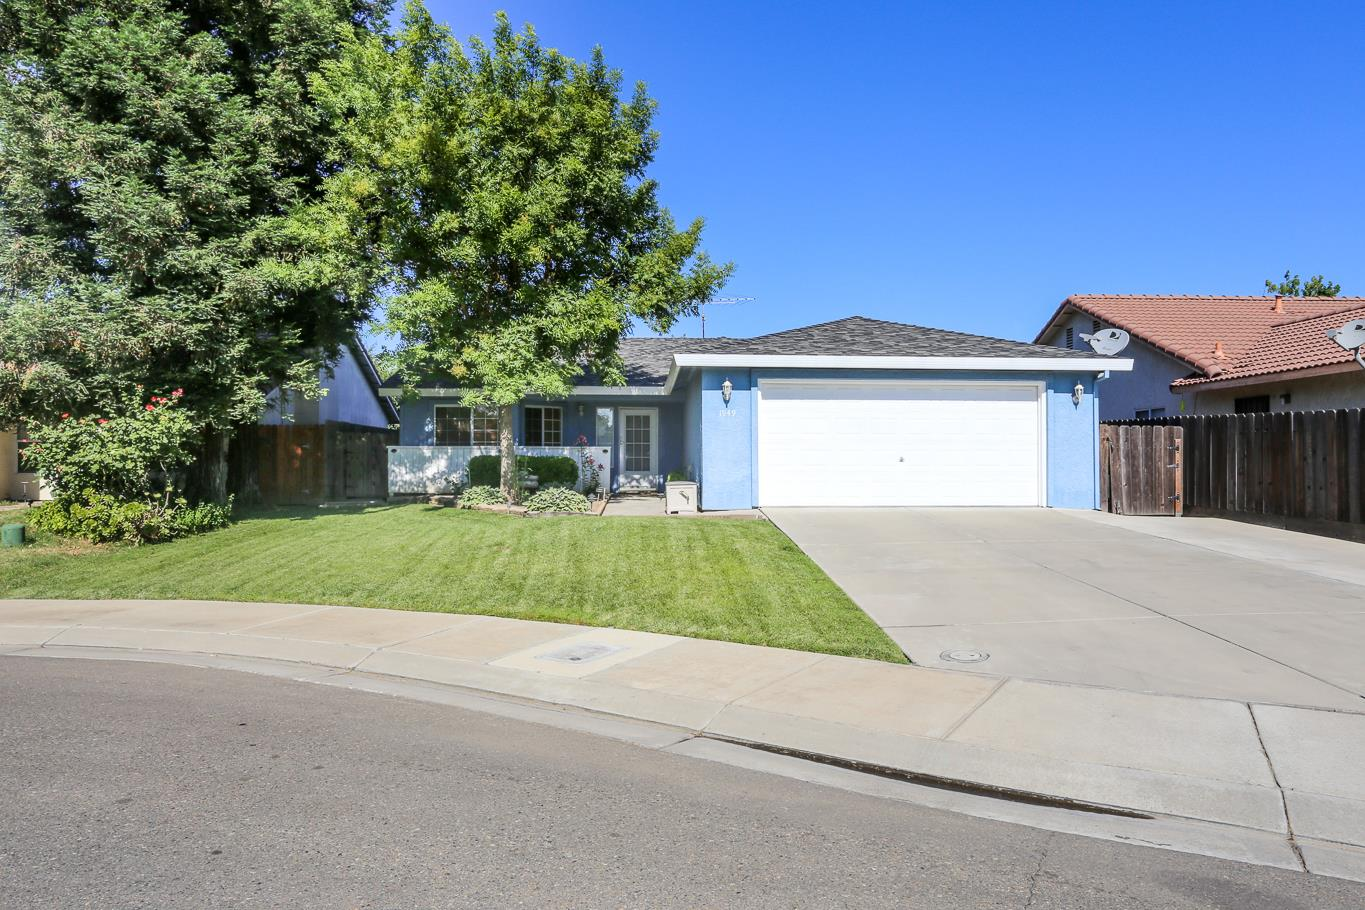 Single Family Home for Sale at 1949 Fultz Merced, California 95341 United States